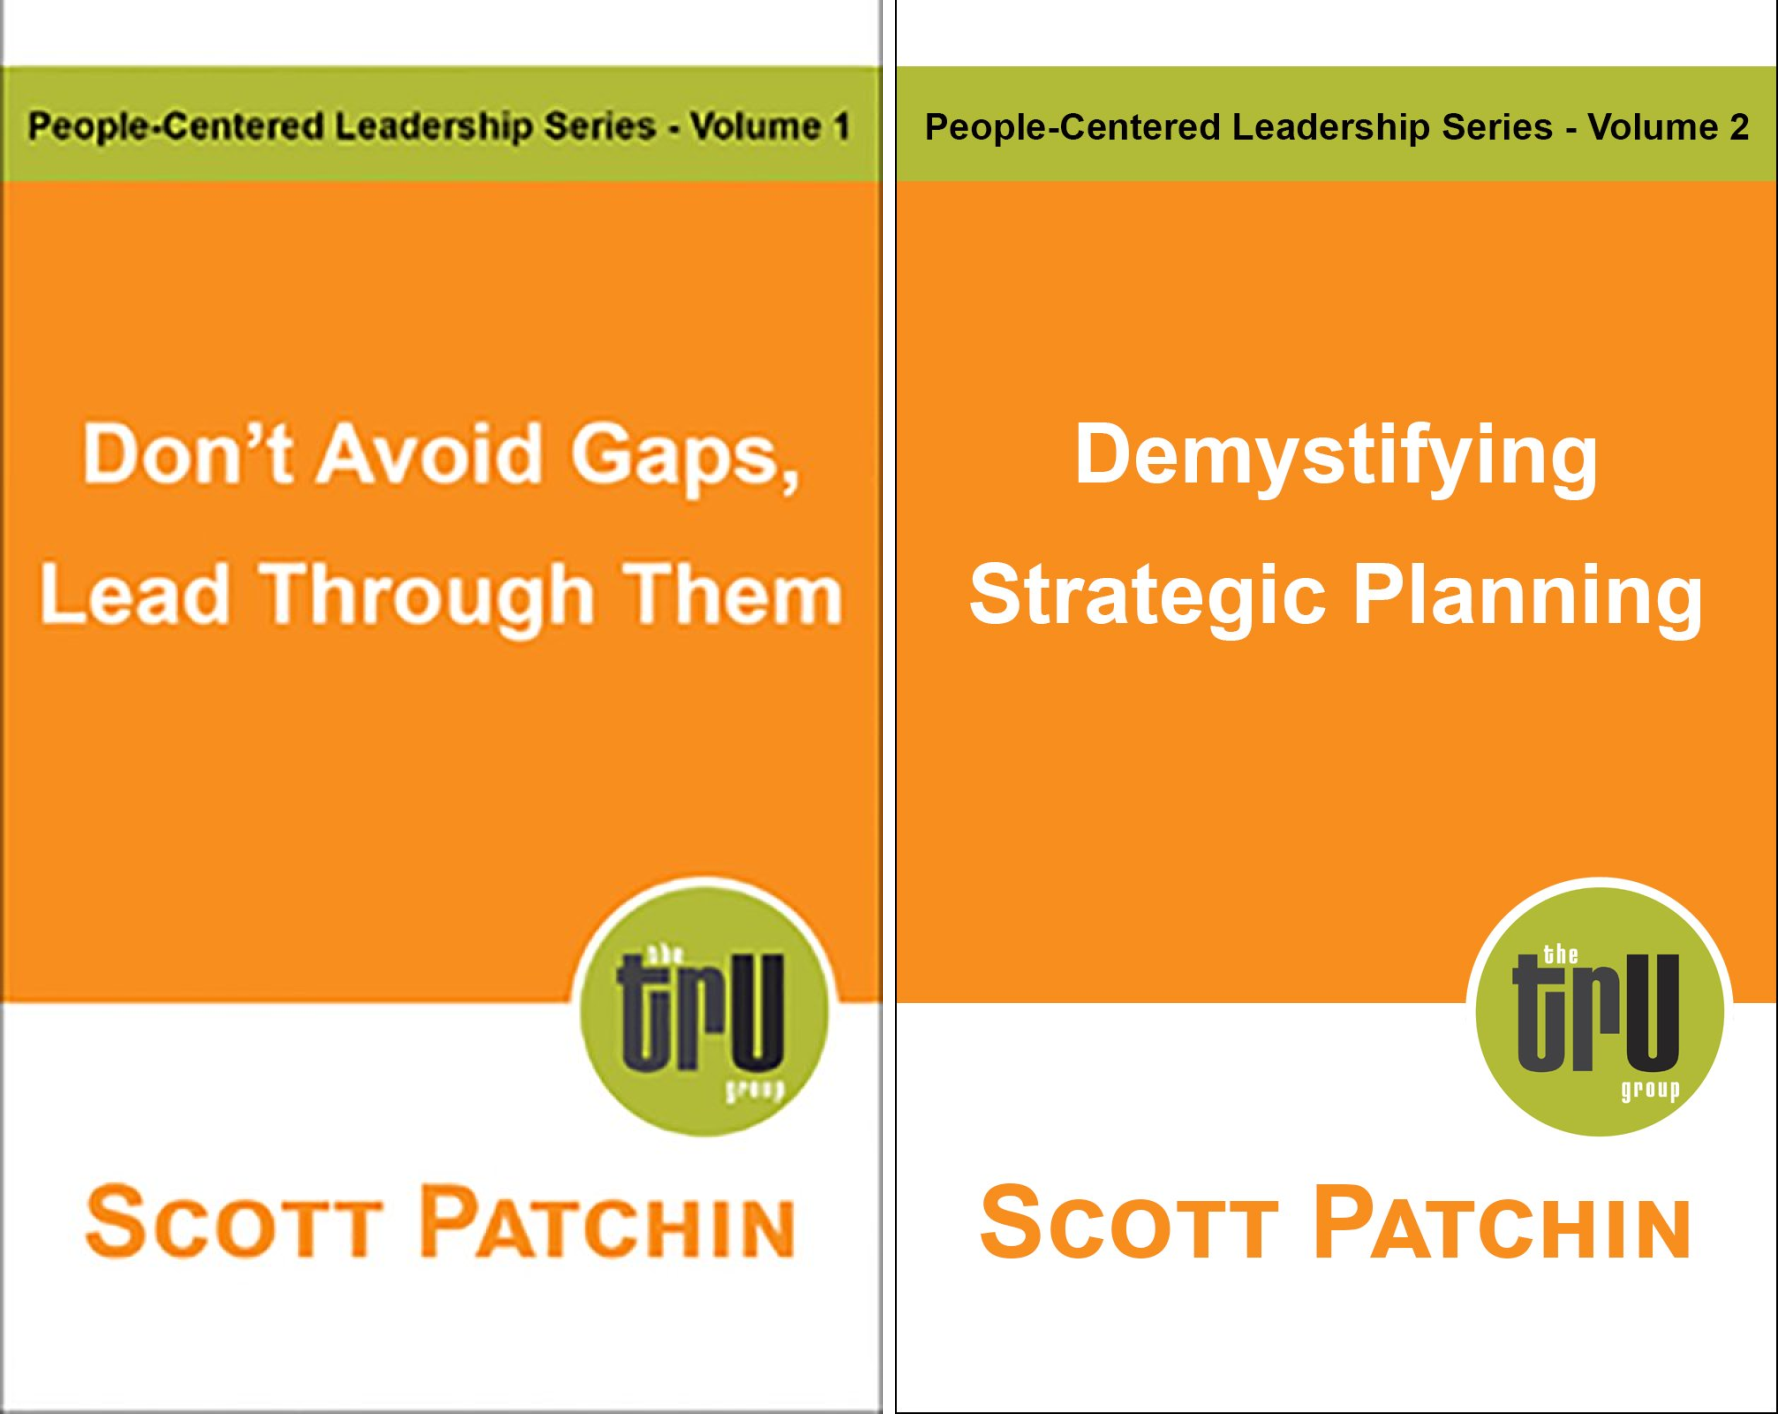 People-Centered Leadership (2 Book Series)